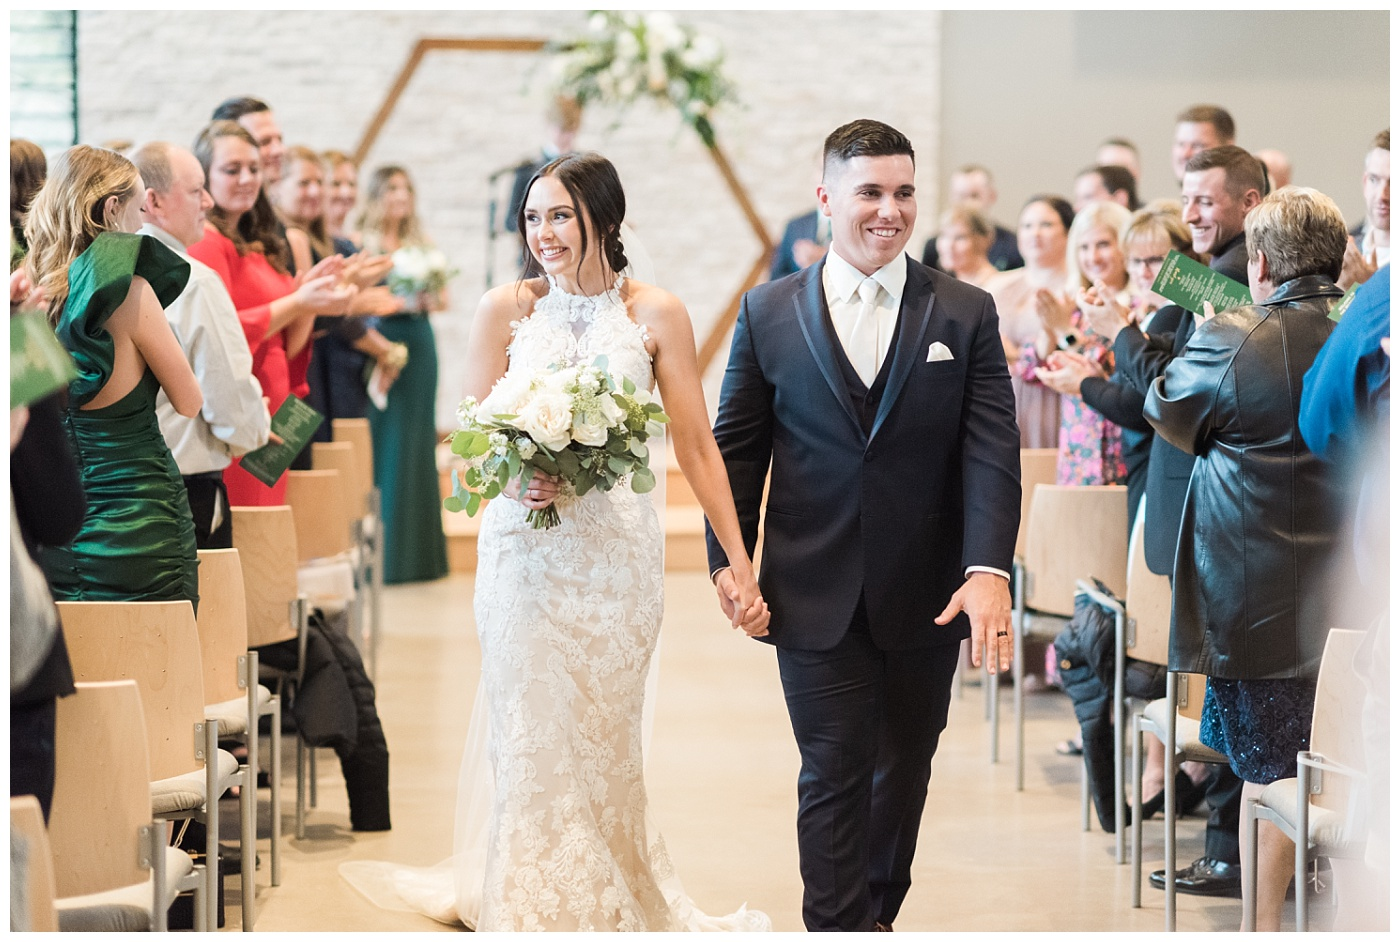 Stephanie Marie Photography Unitarian Universalist Society Church Ceremony Hotel Kirkwood Reception Cedar Rapids Iowa City Wedding Photographer Sean Madison Moore_0042.jpg